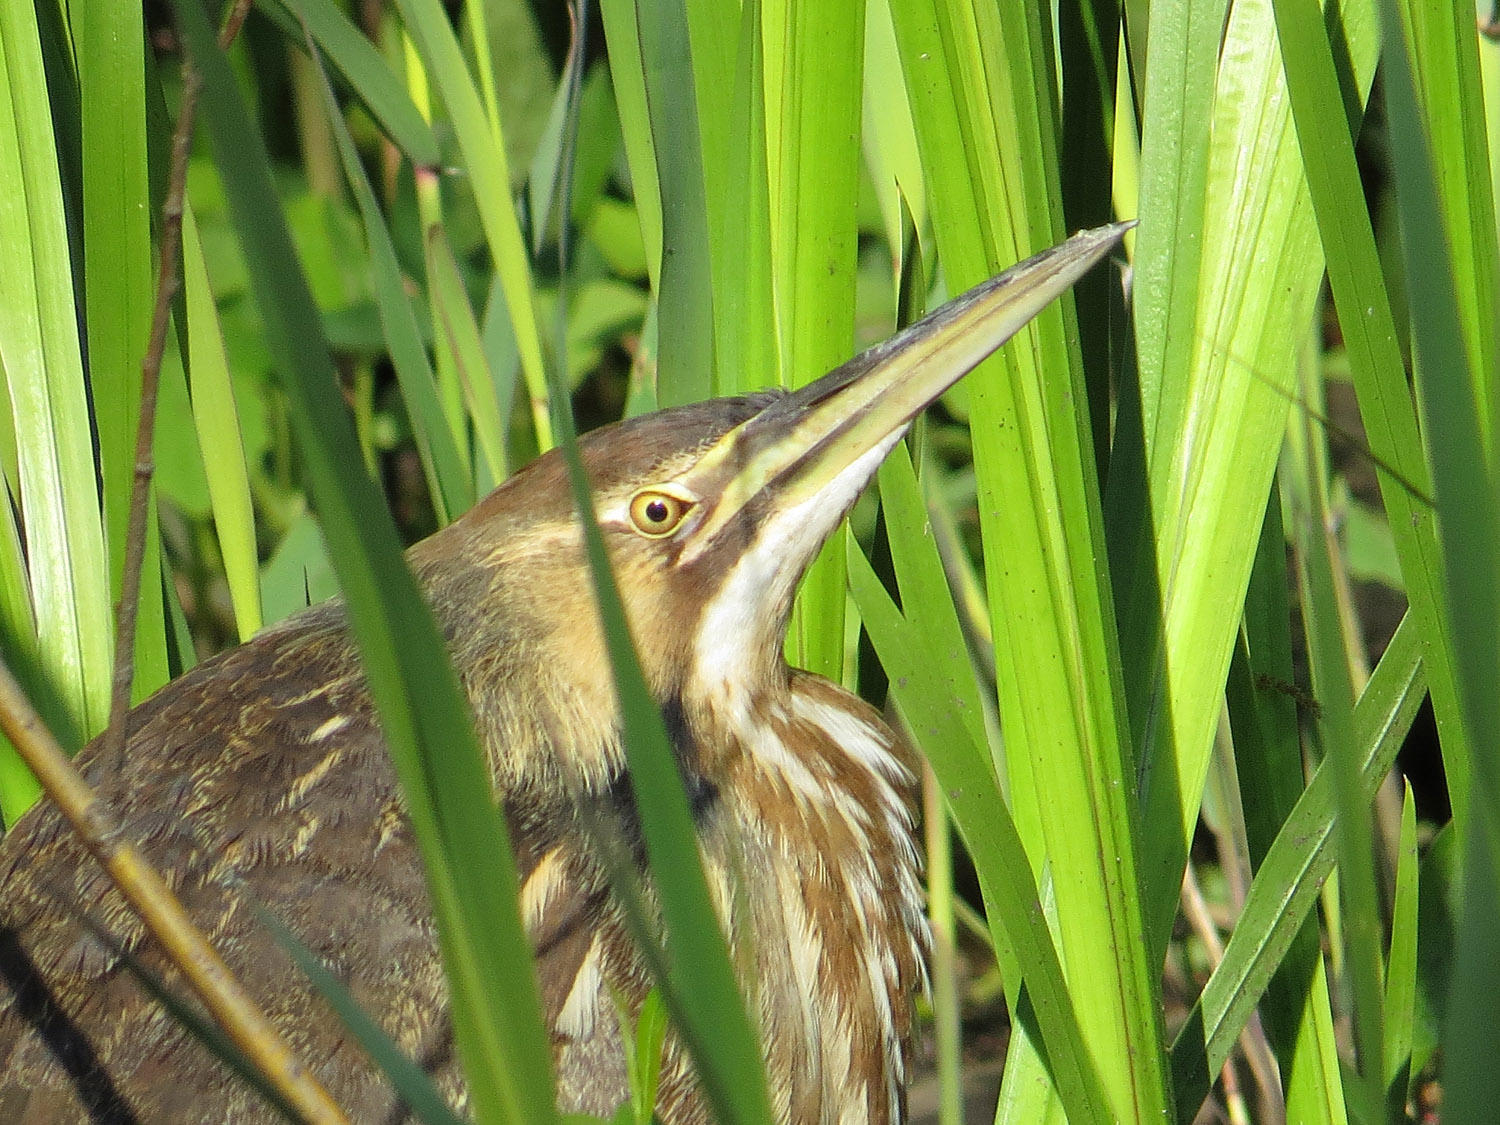 An American bittern at the south end of the Oven, May 8, 2016.